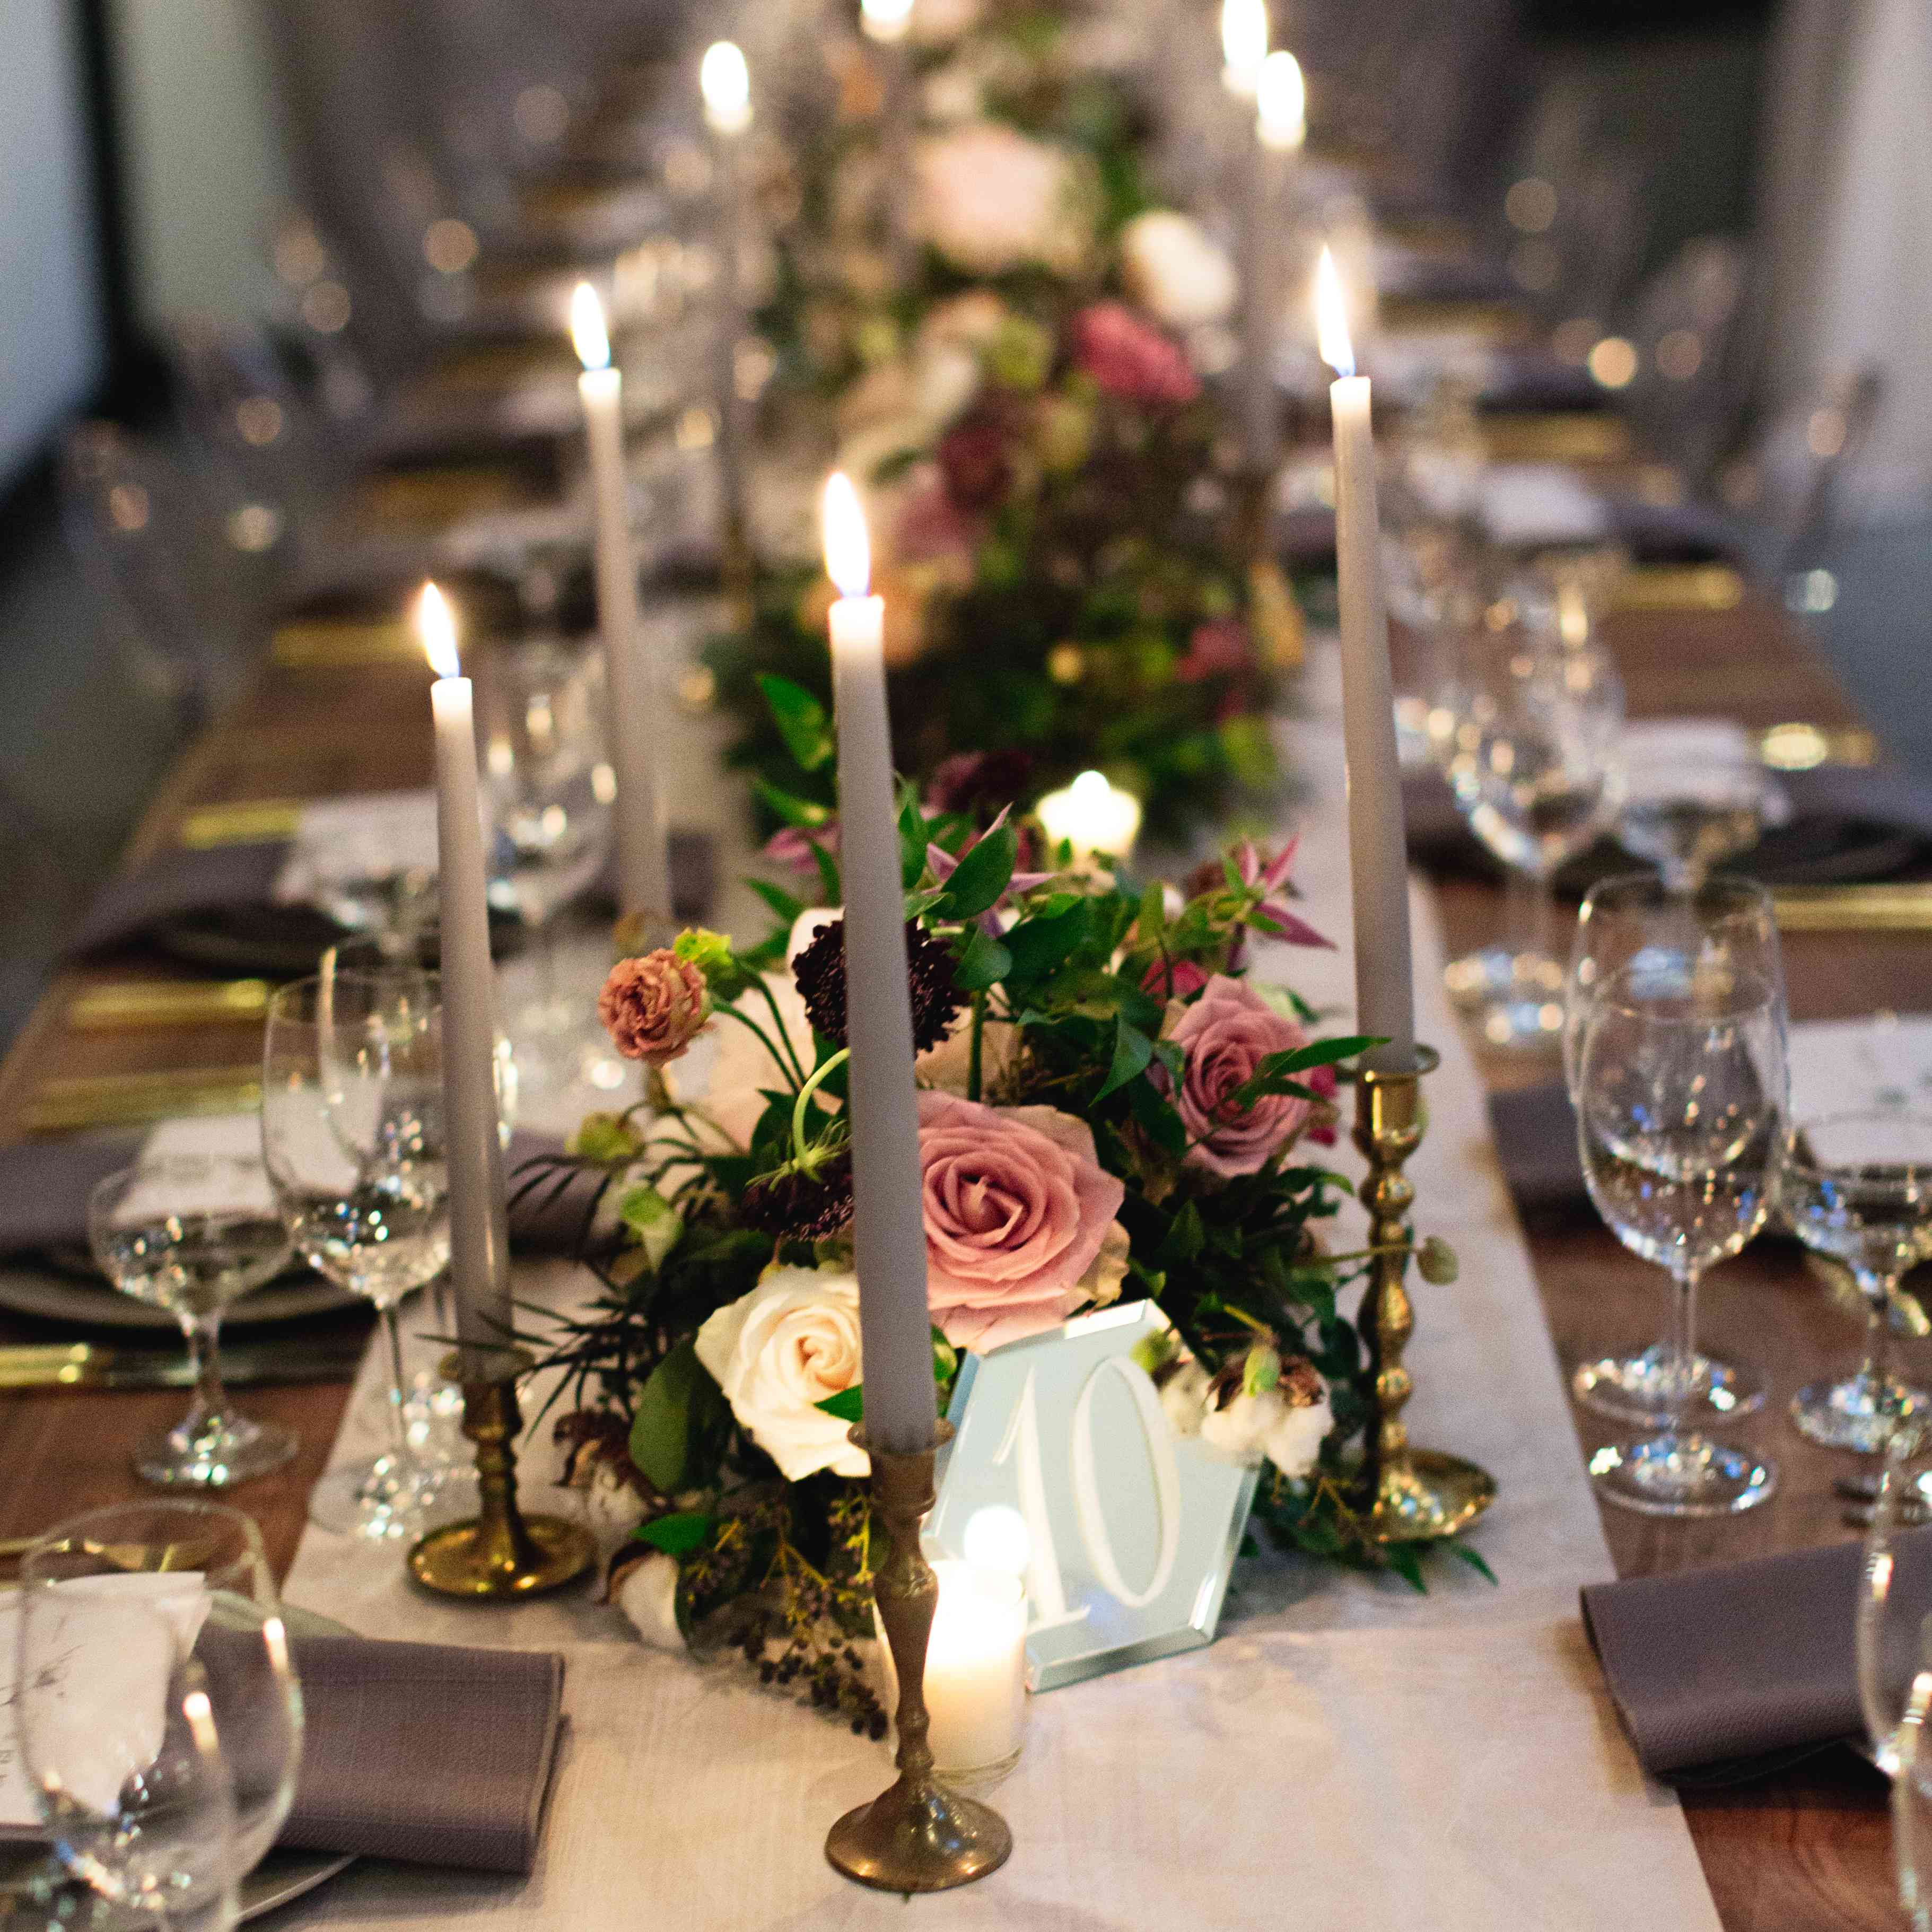 Tablescape with table number